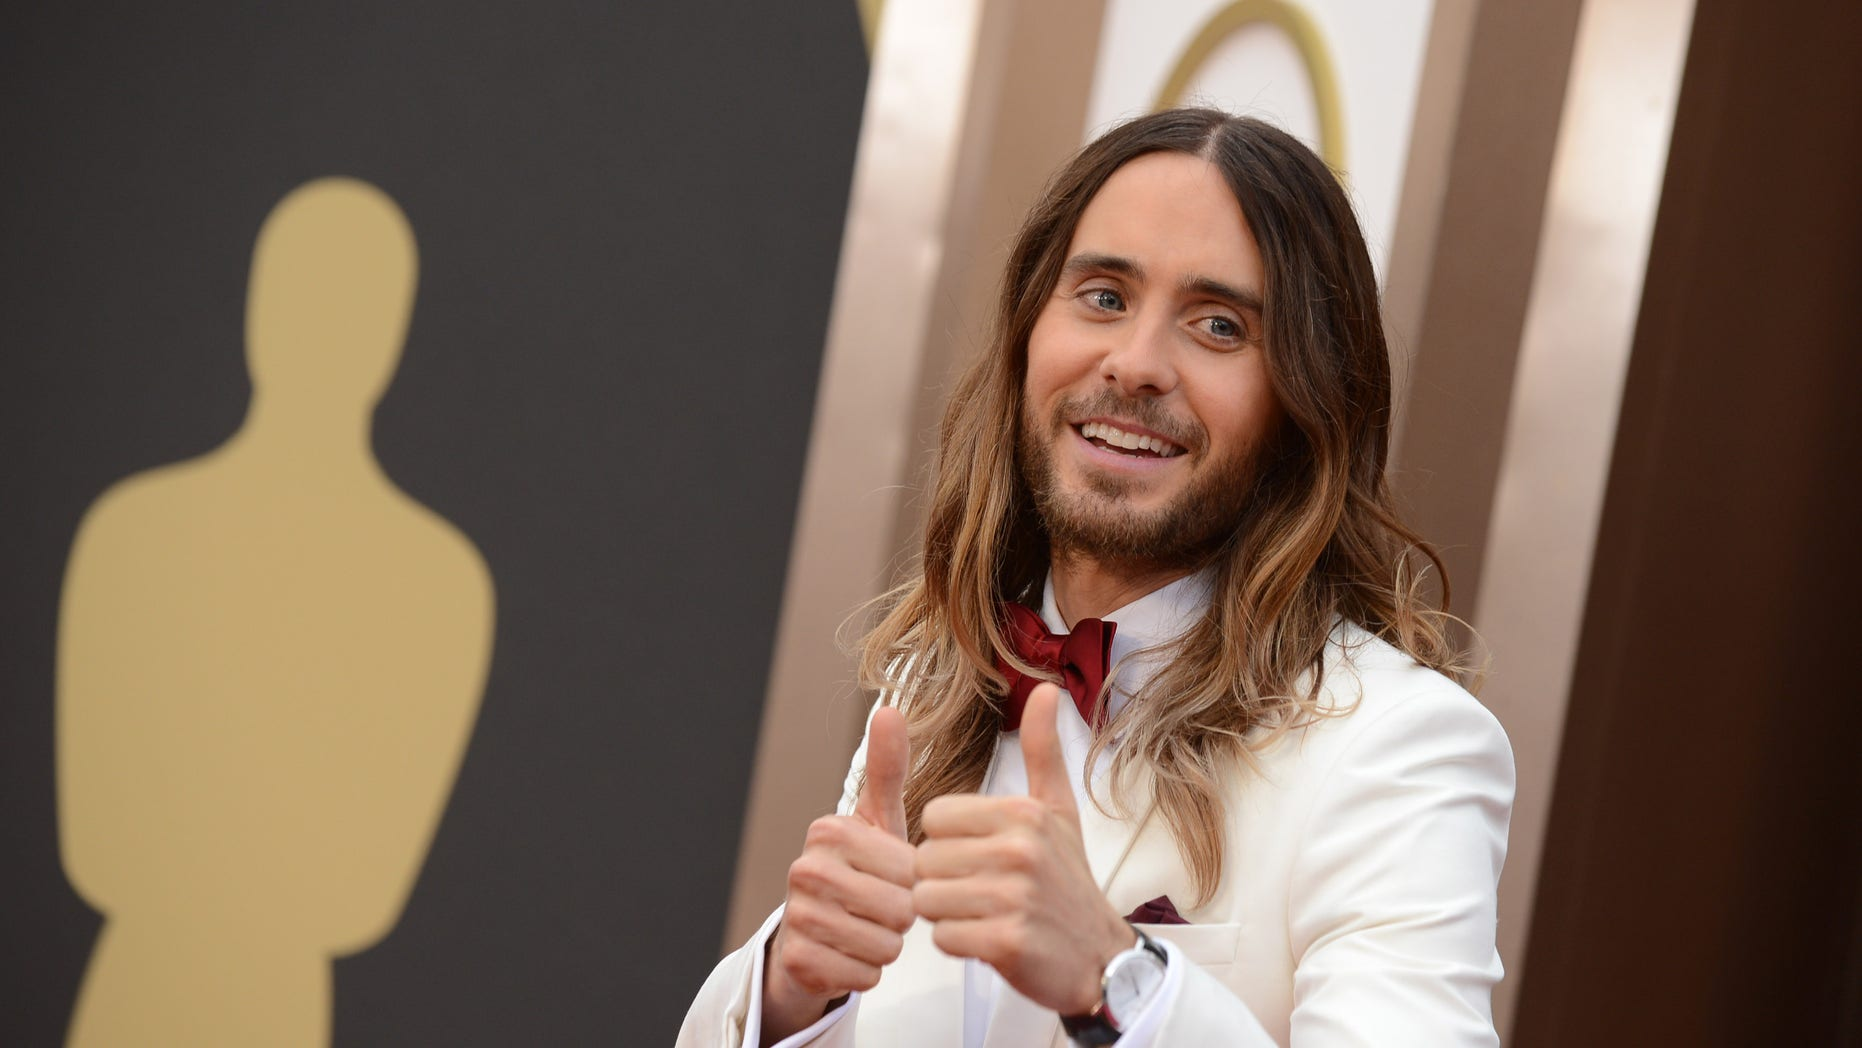 Jared Leto arrives at the Oscars on Sunday, March 2, 2014, at the Dolby Theatre in Los Angeles.  (Photo by Jordan Strauss/Invision/AP)